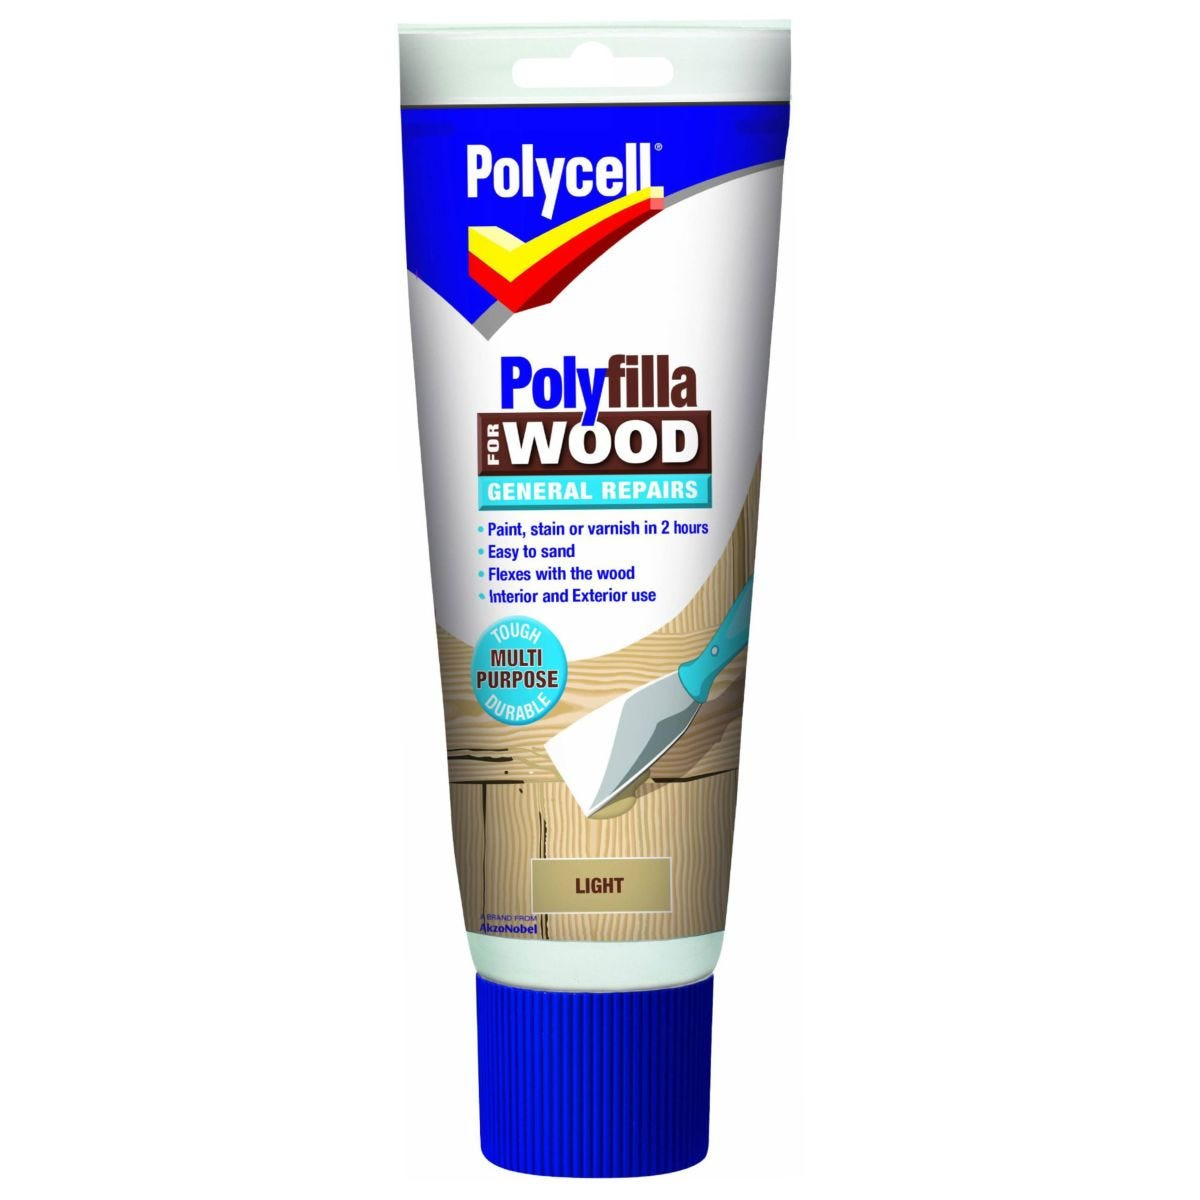 Polycell Polyfilla For Wood General Repairs 330ml - Light